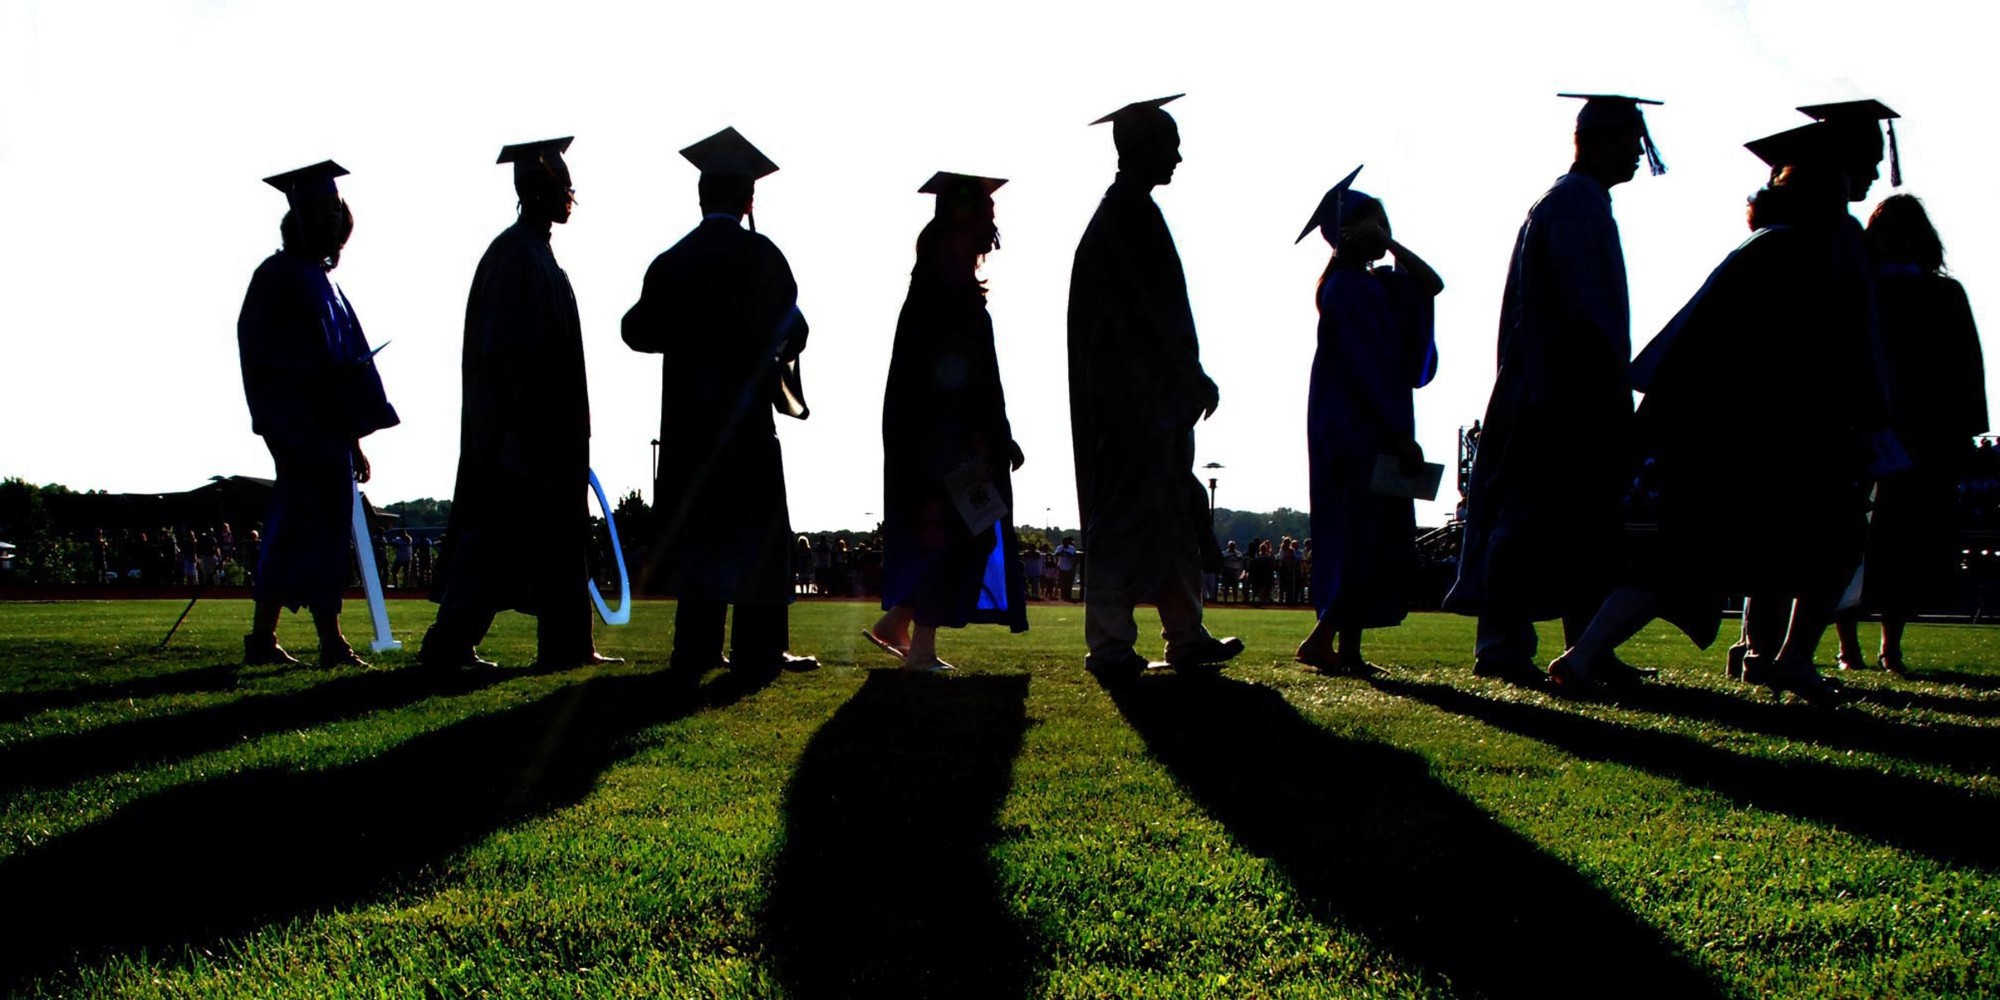 A Lost Decade in Higher Education Funding